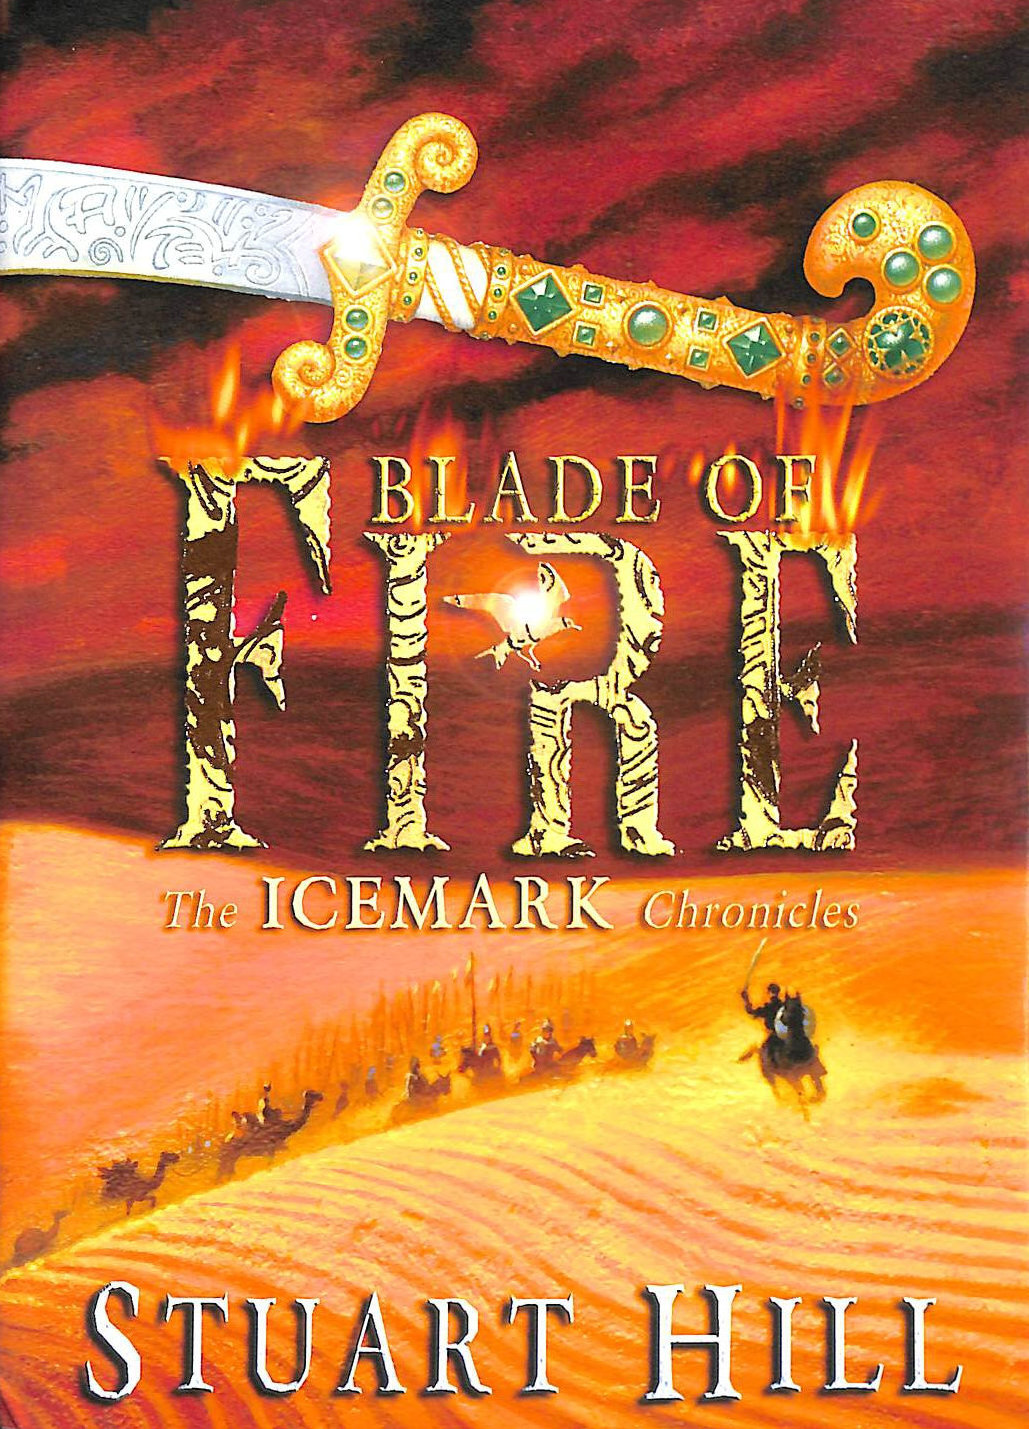 Image for Blade of Fire (Chronicles of Icemark) (Icemark Chronicles)